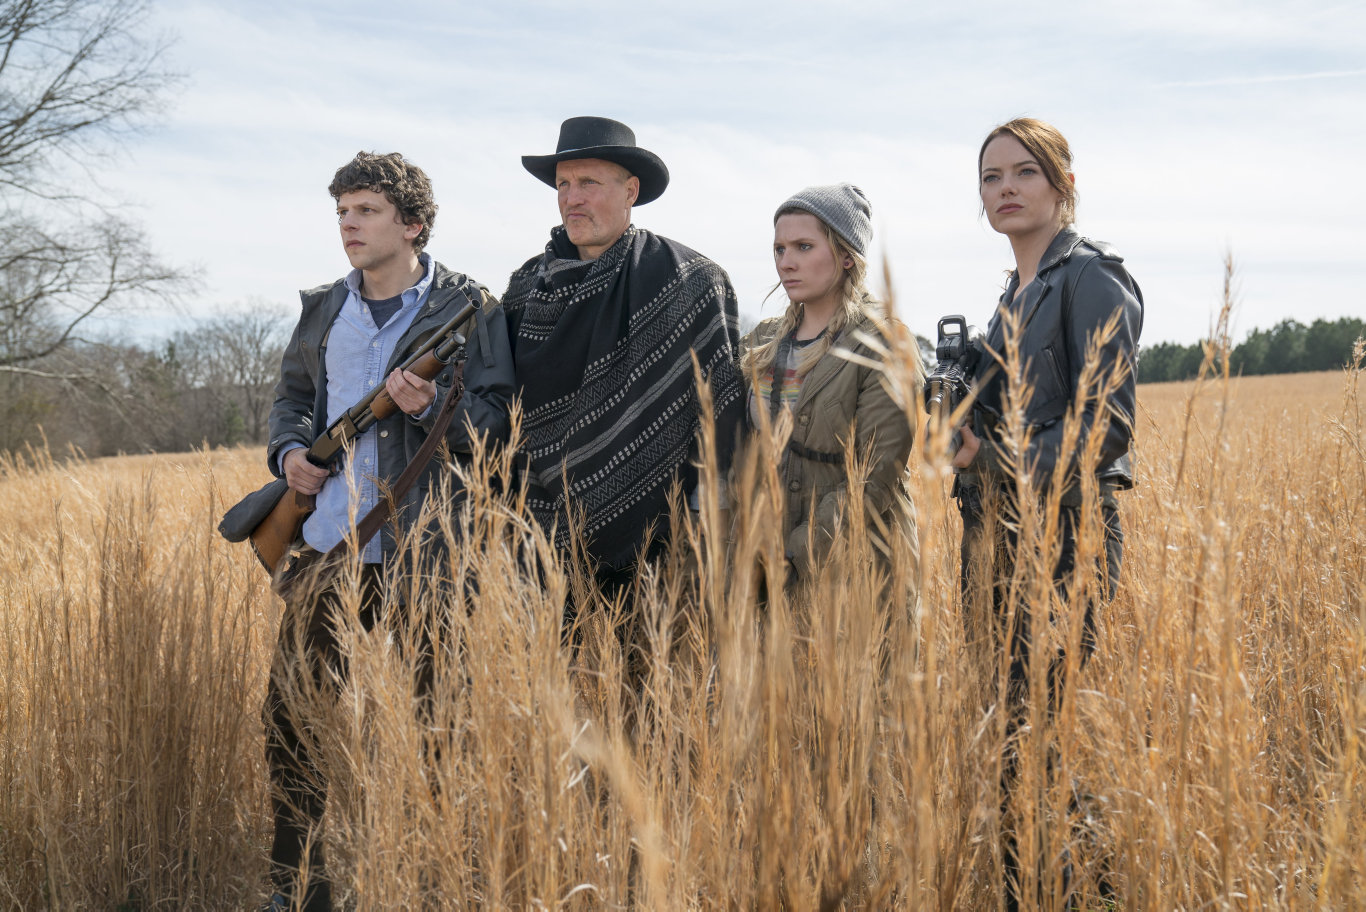 Jesse Eisenberg, Woody Harrelson, Abigail Breslin and Emma Stone in a scene from Zombieland: Double Tap.